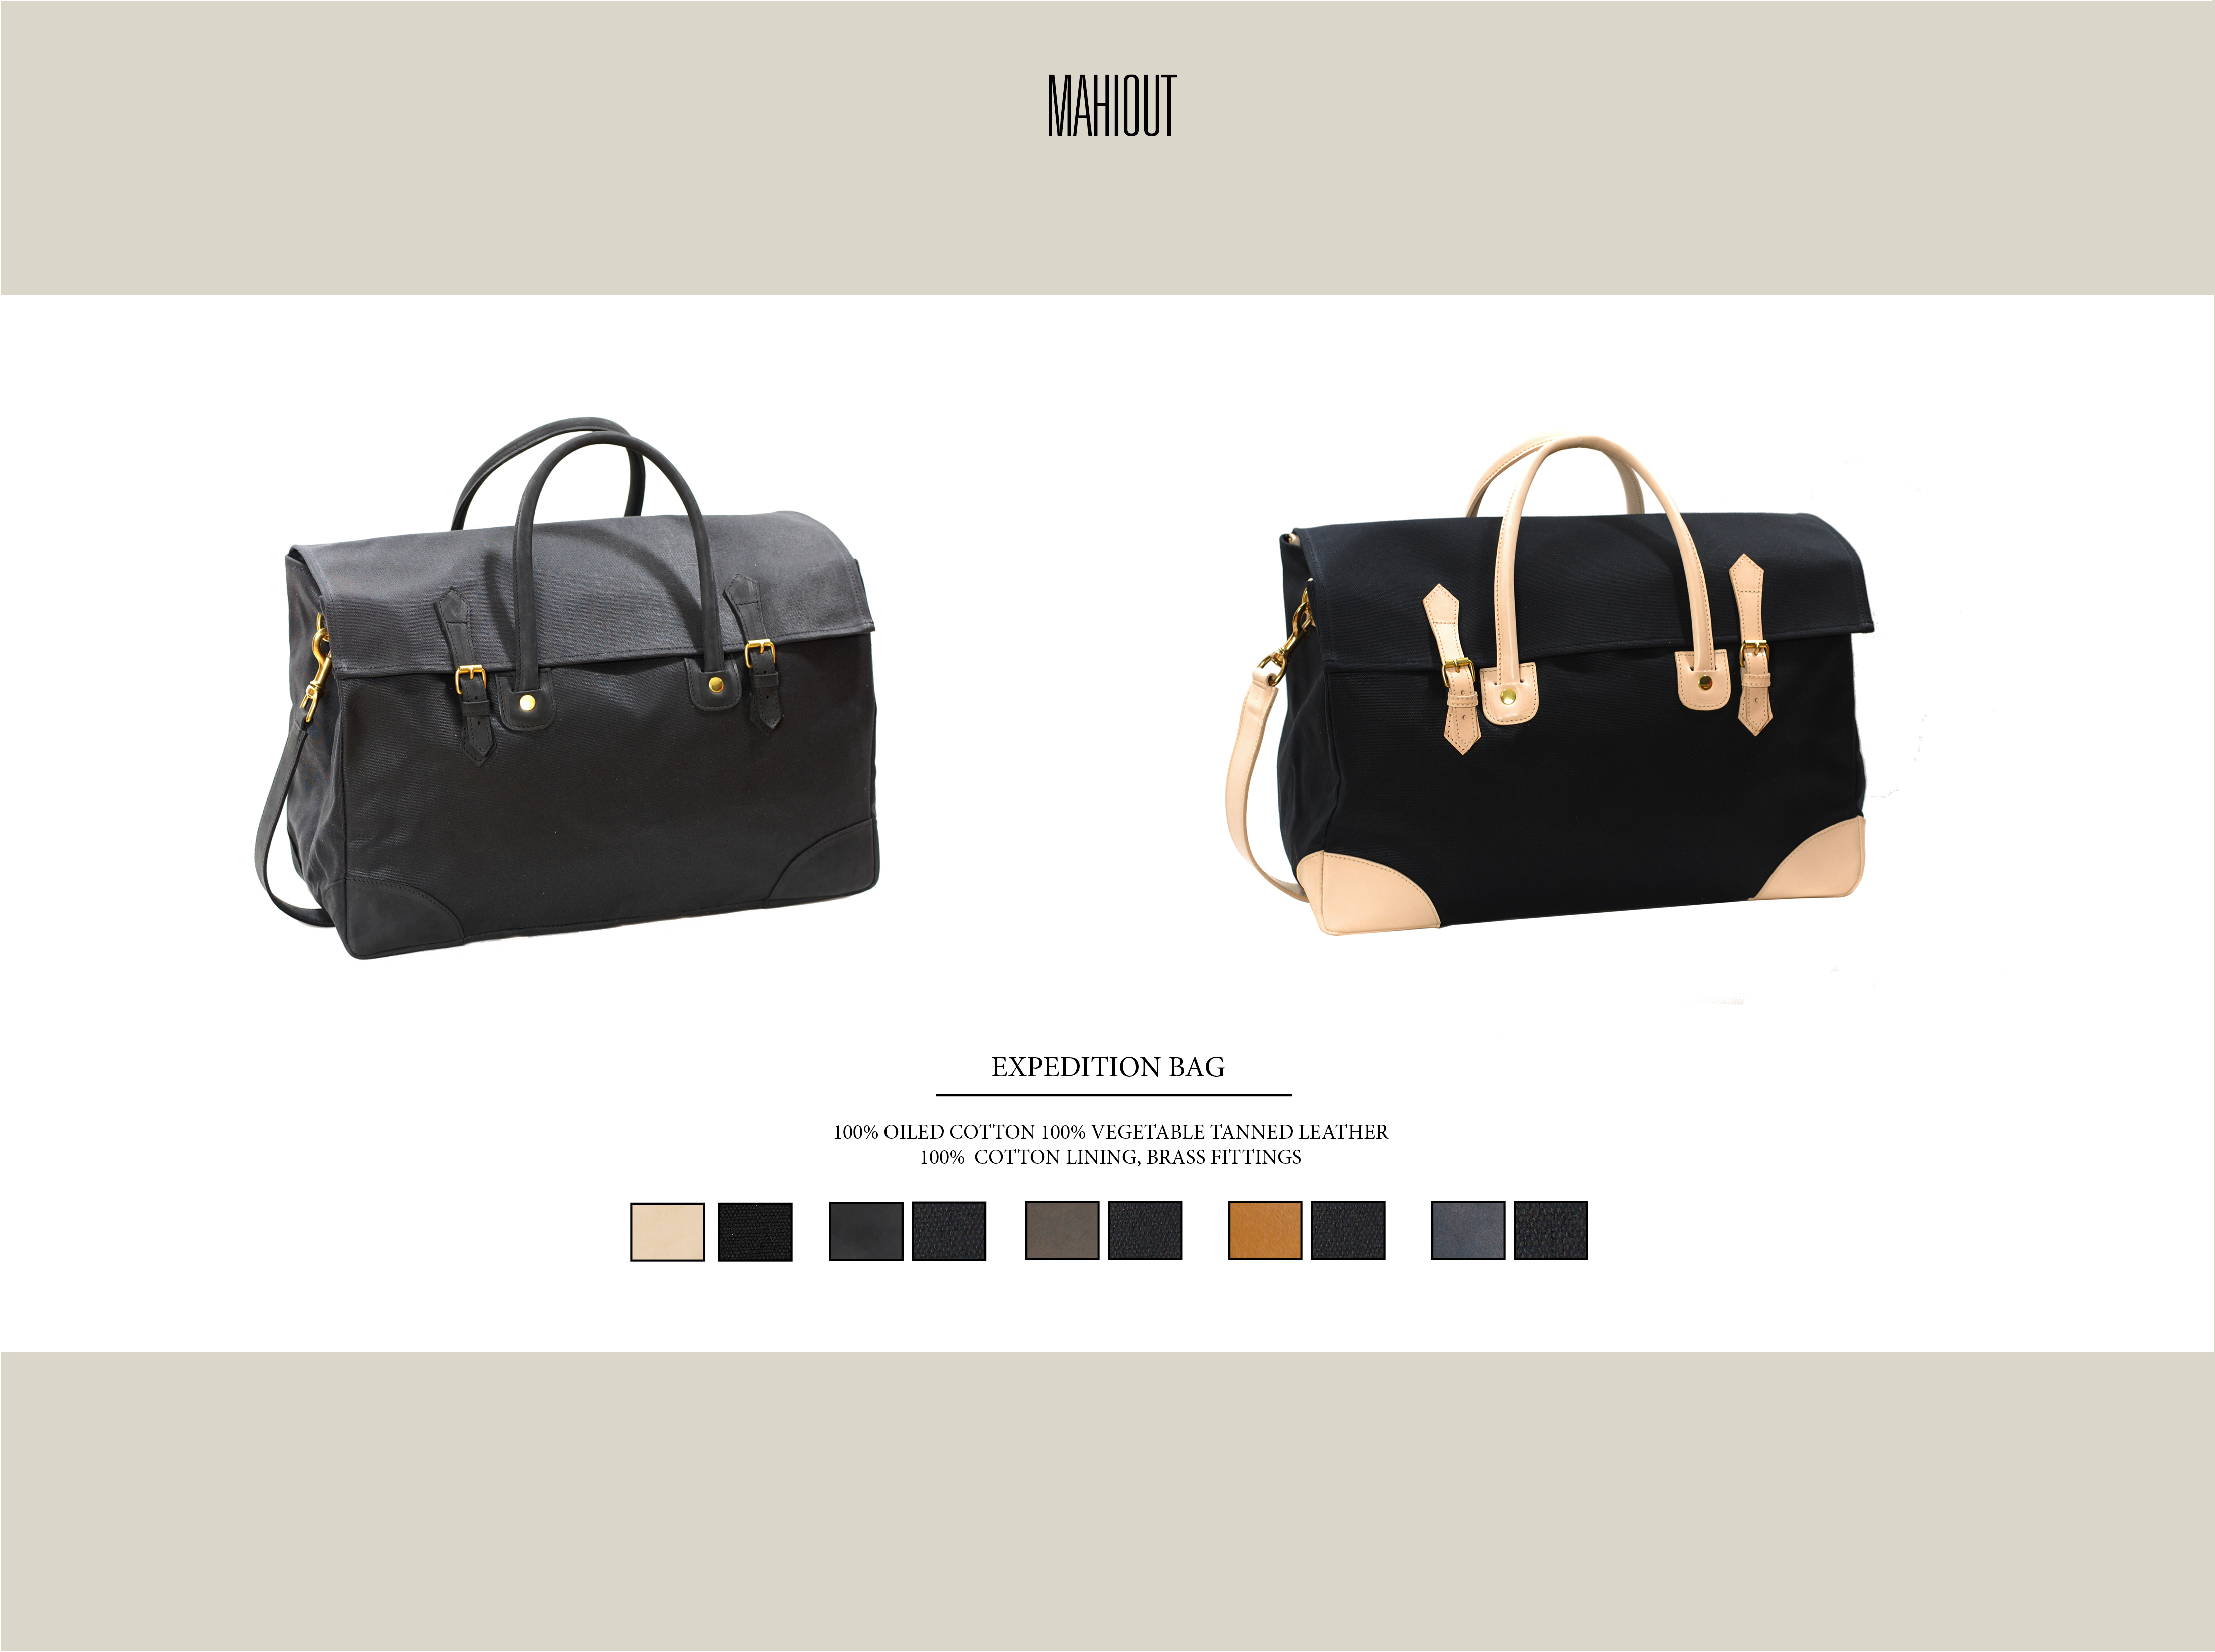 Mahiout expedition bag in canvas and leather